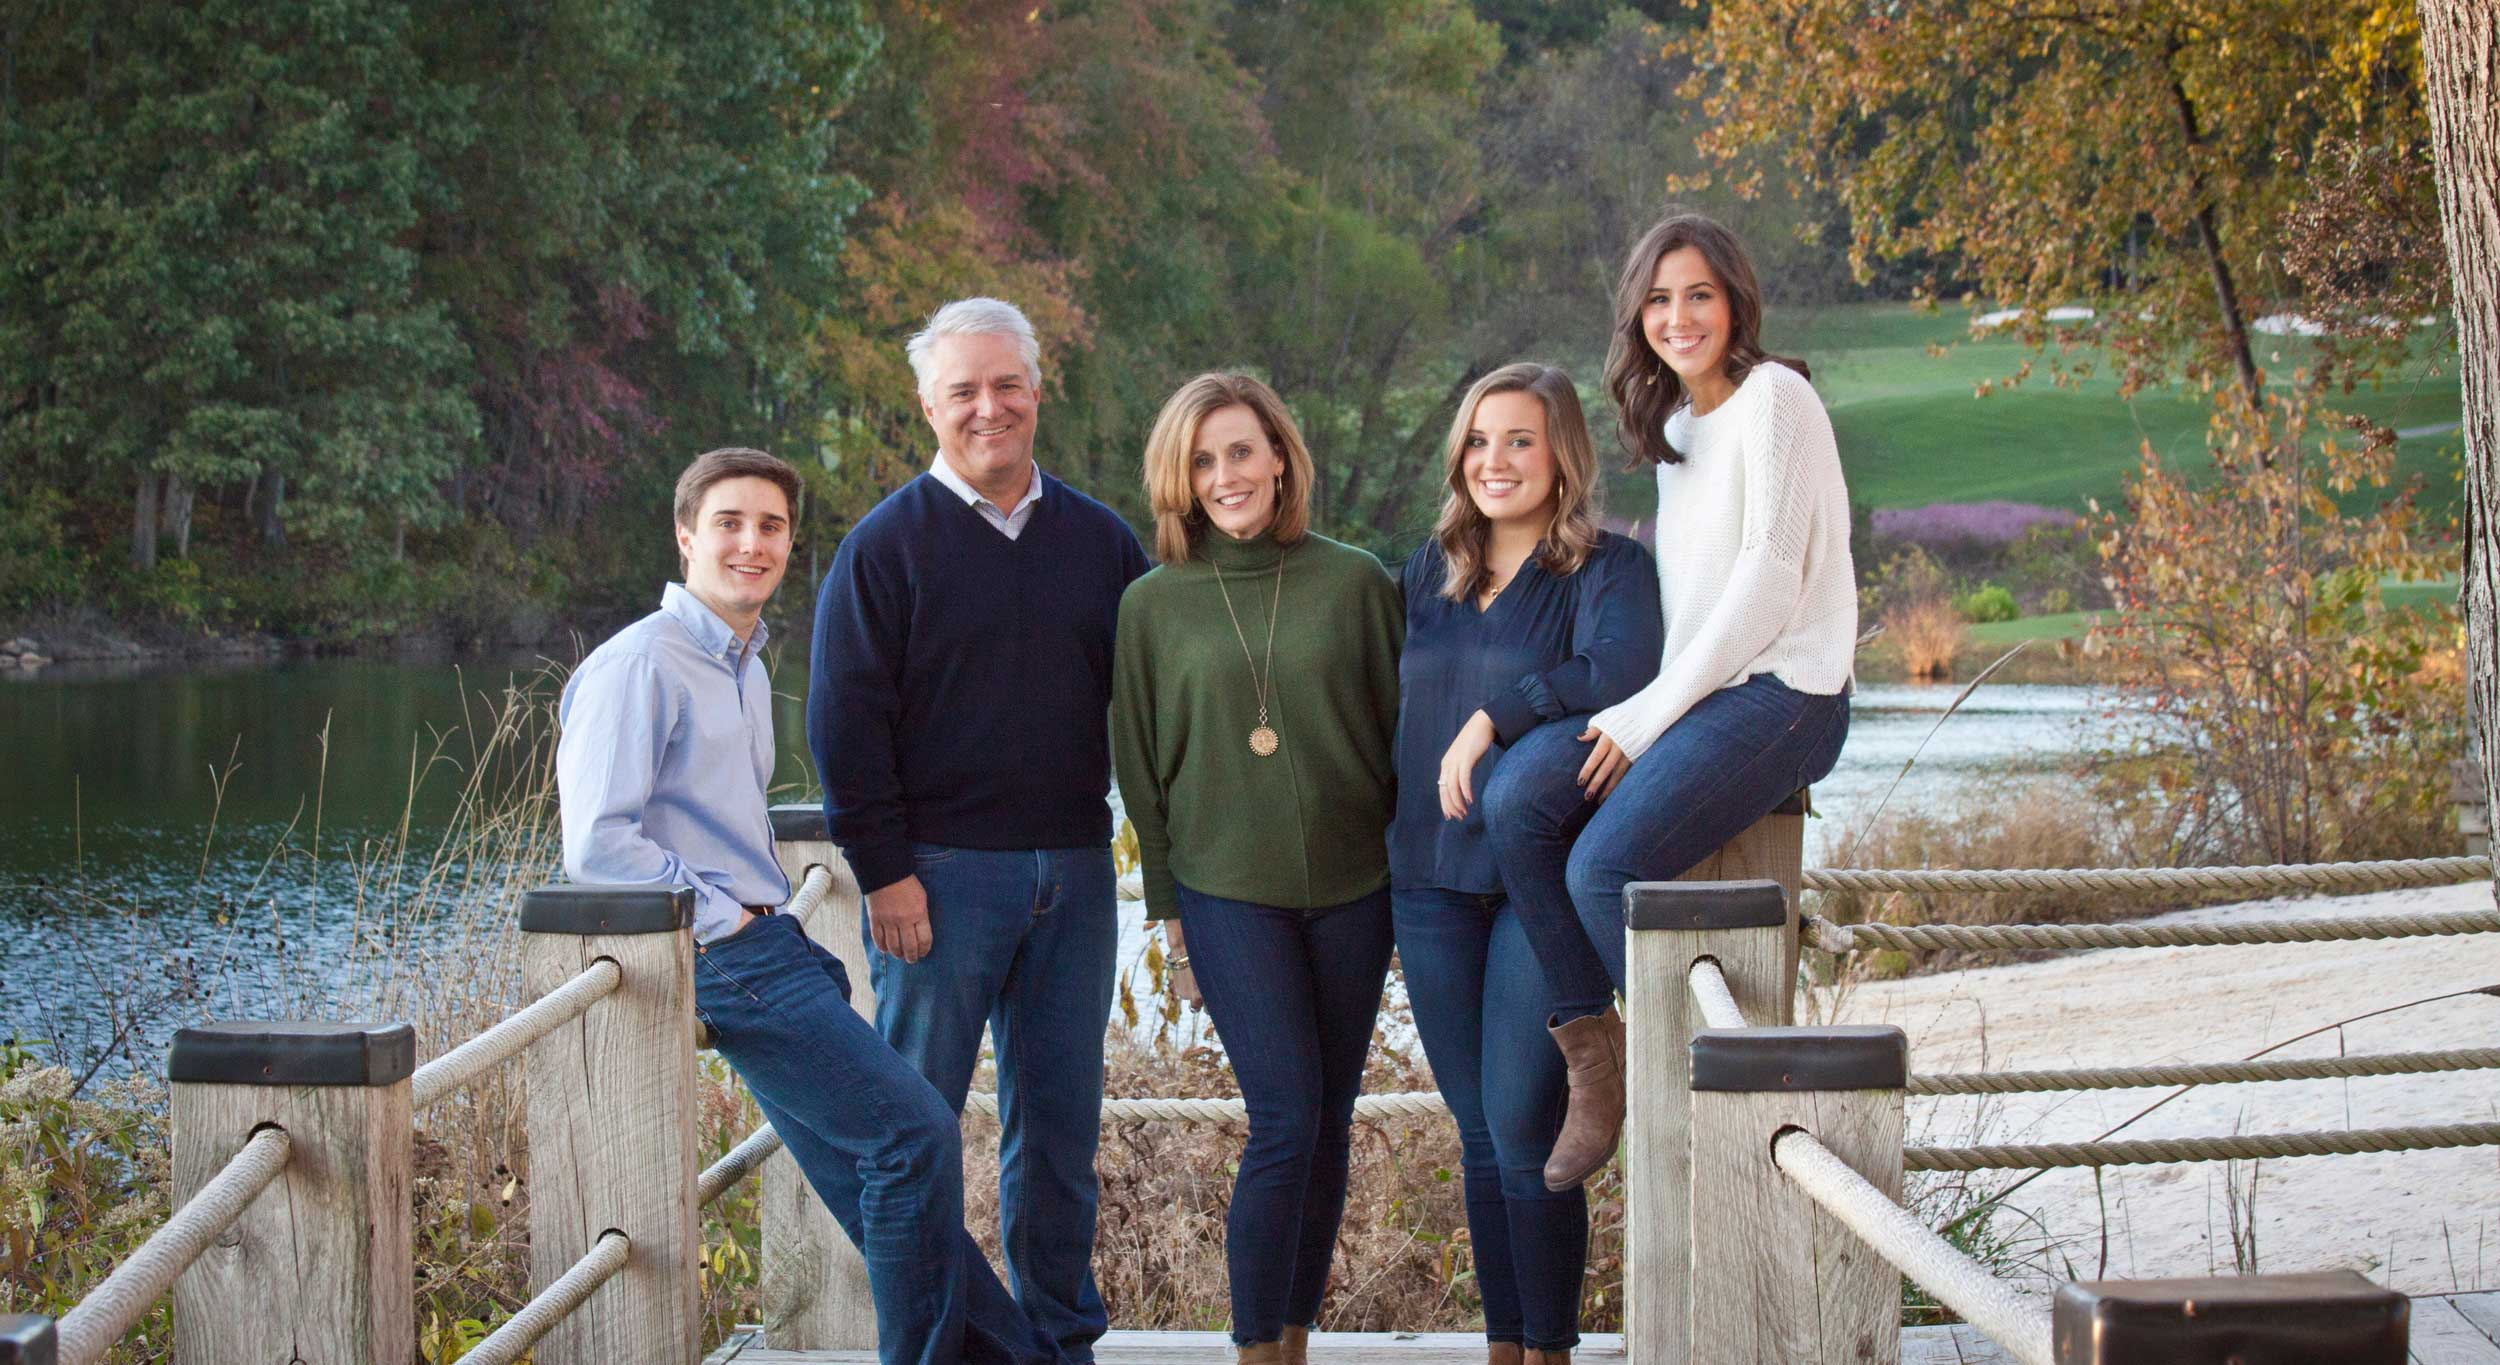 Family on dock in front of greenery at Lake Norman, NC